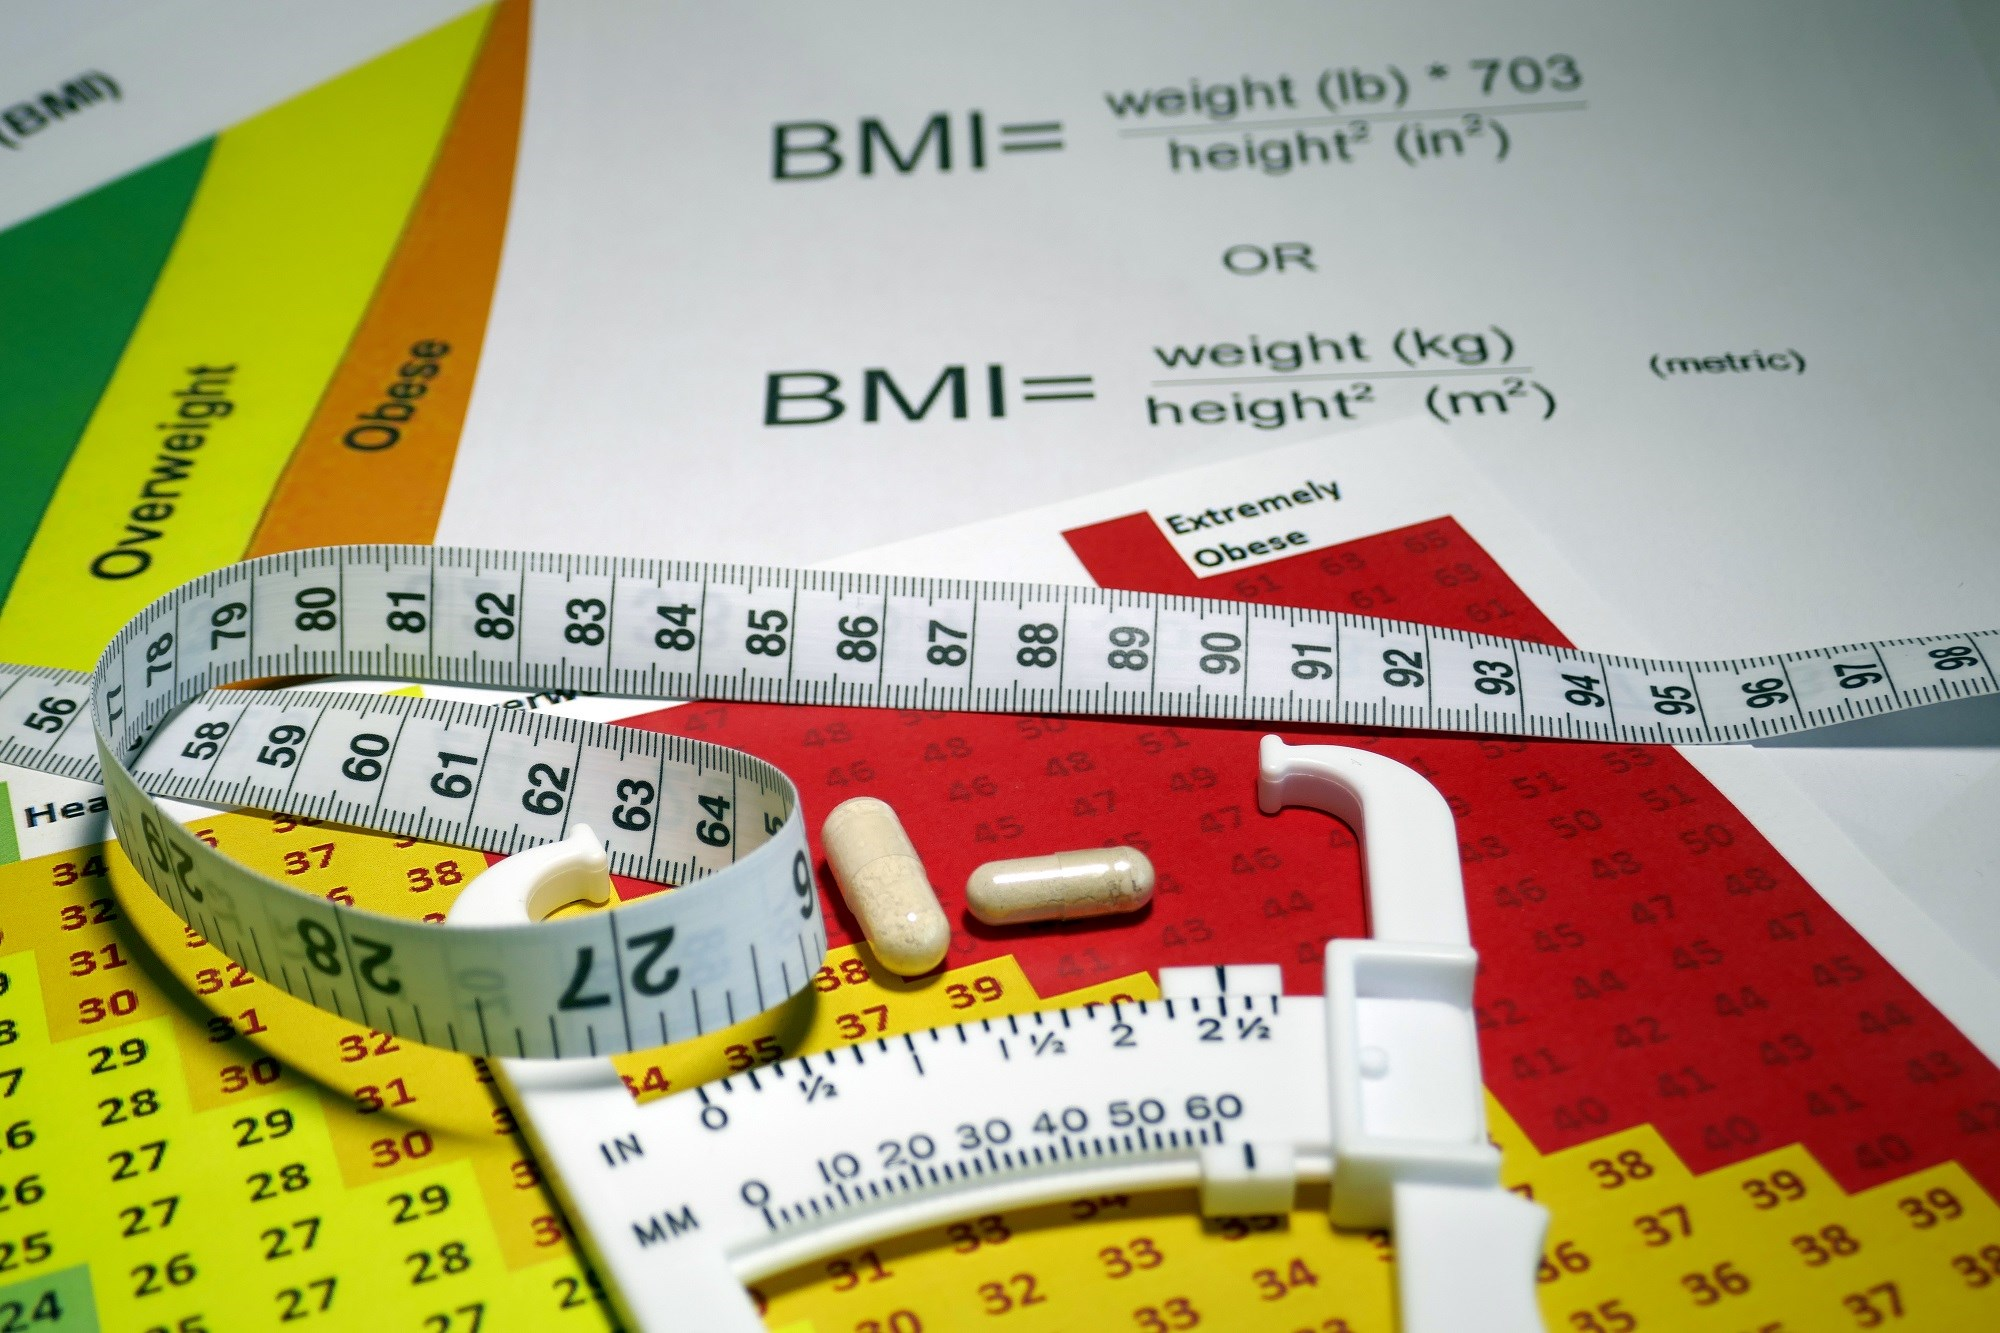 Findings based on large study assessing genetic causal link, even without metabolic effects